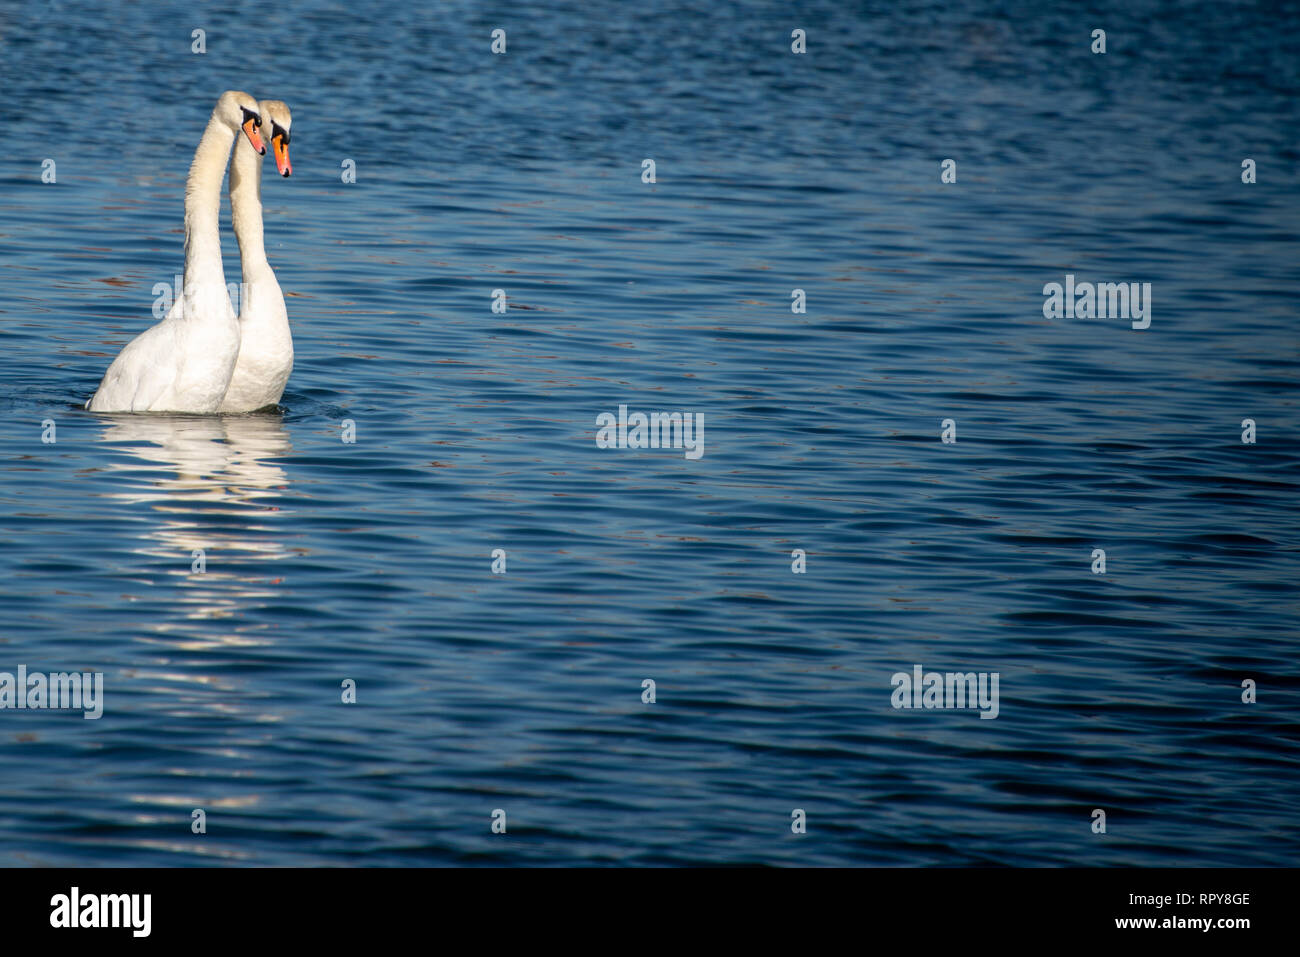 pair of beautiful white swans with elegant necks rearing out of deep blue water in sync with space for caption - Stock Image